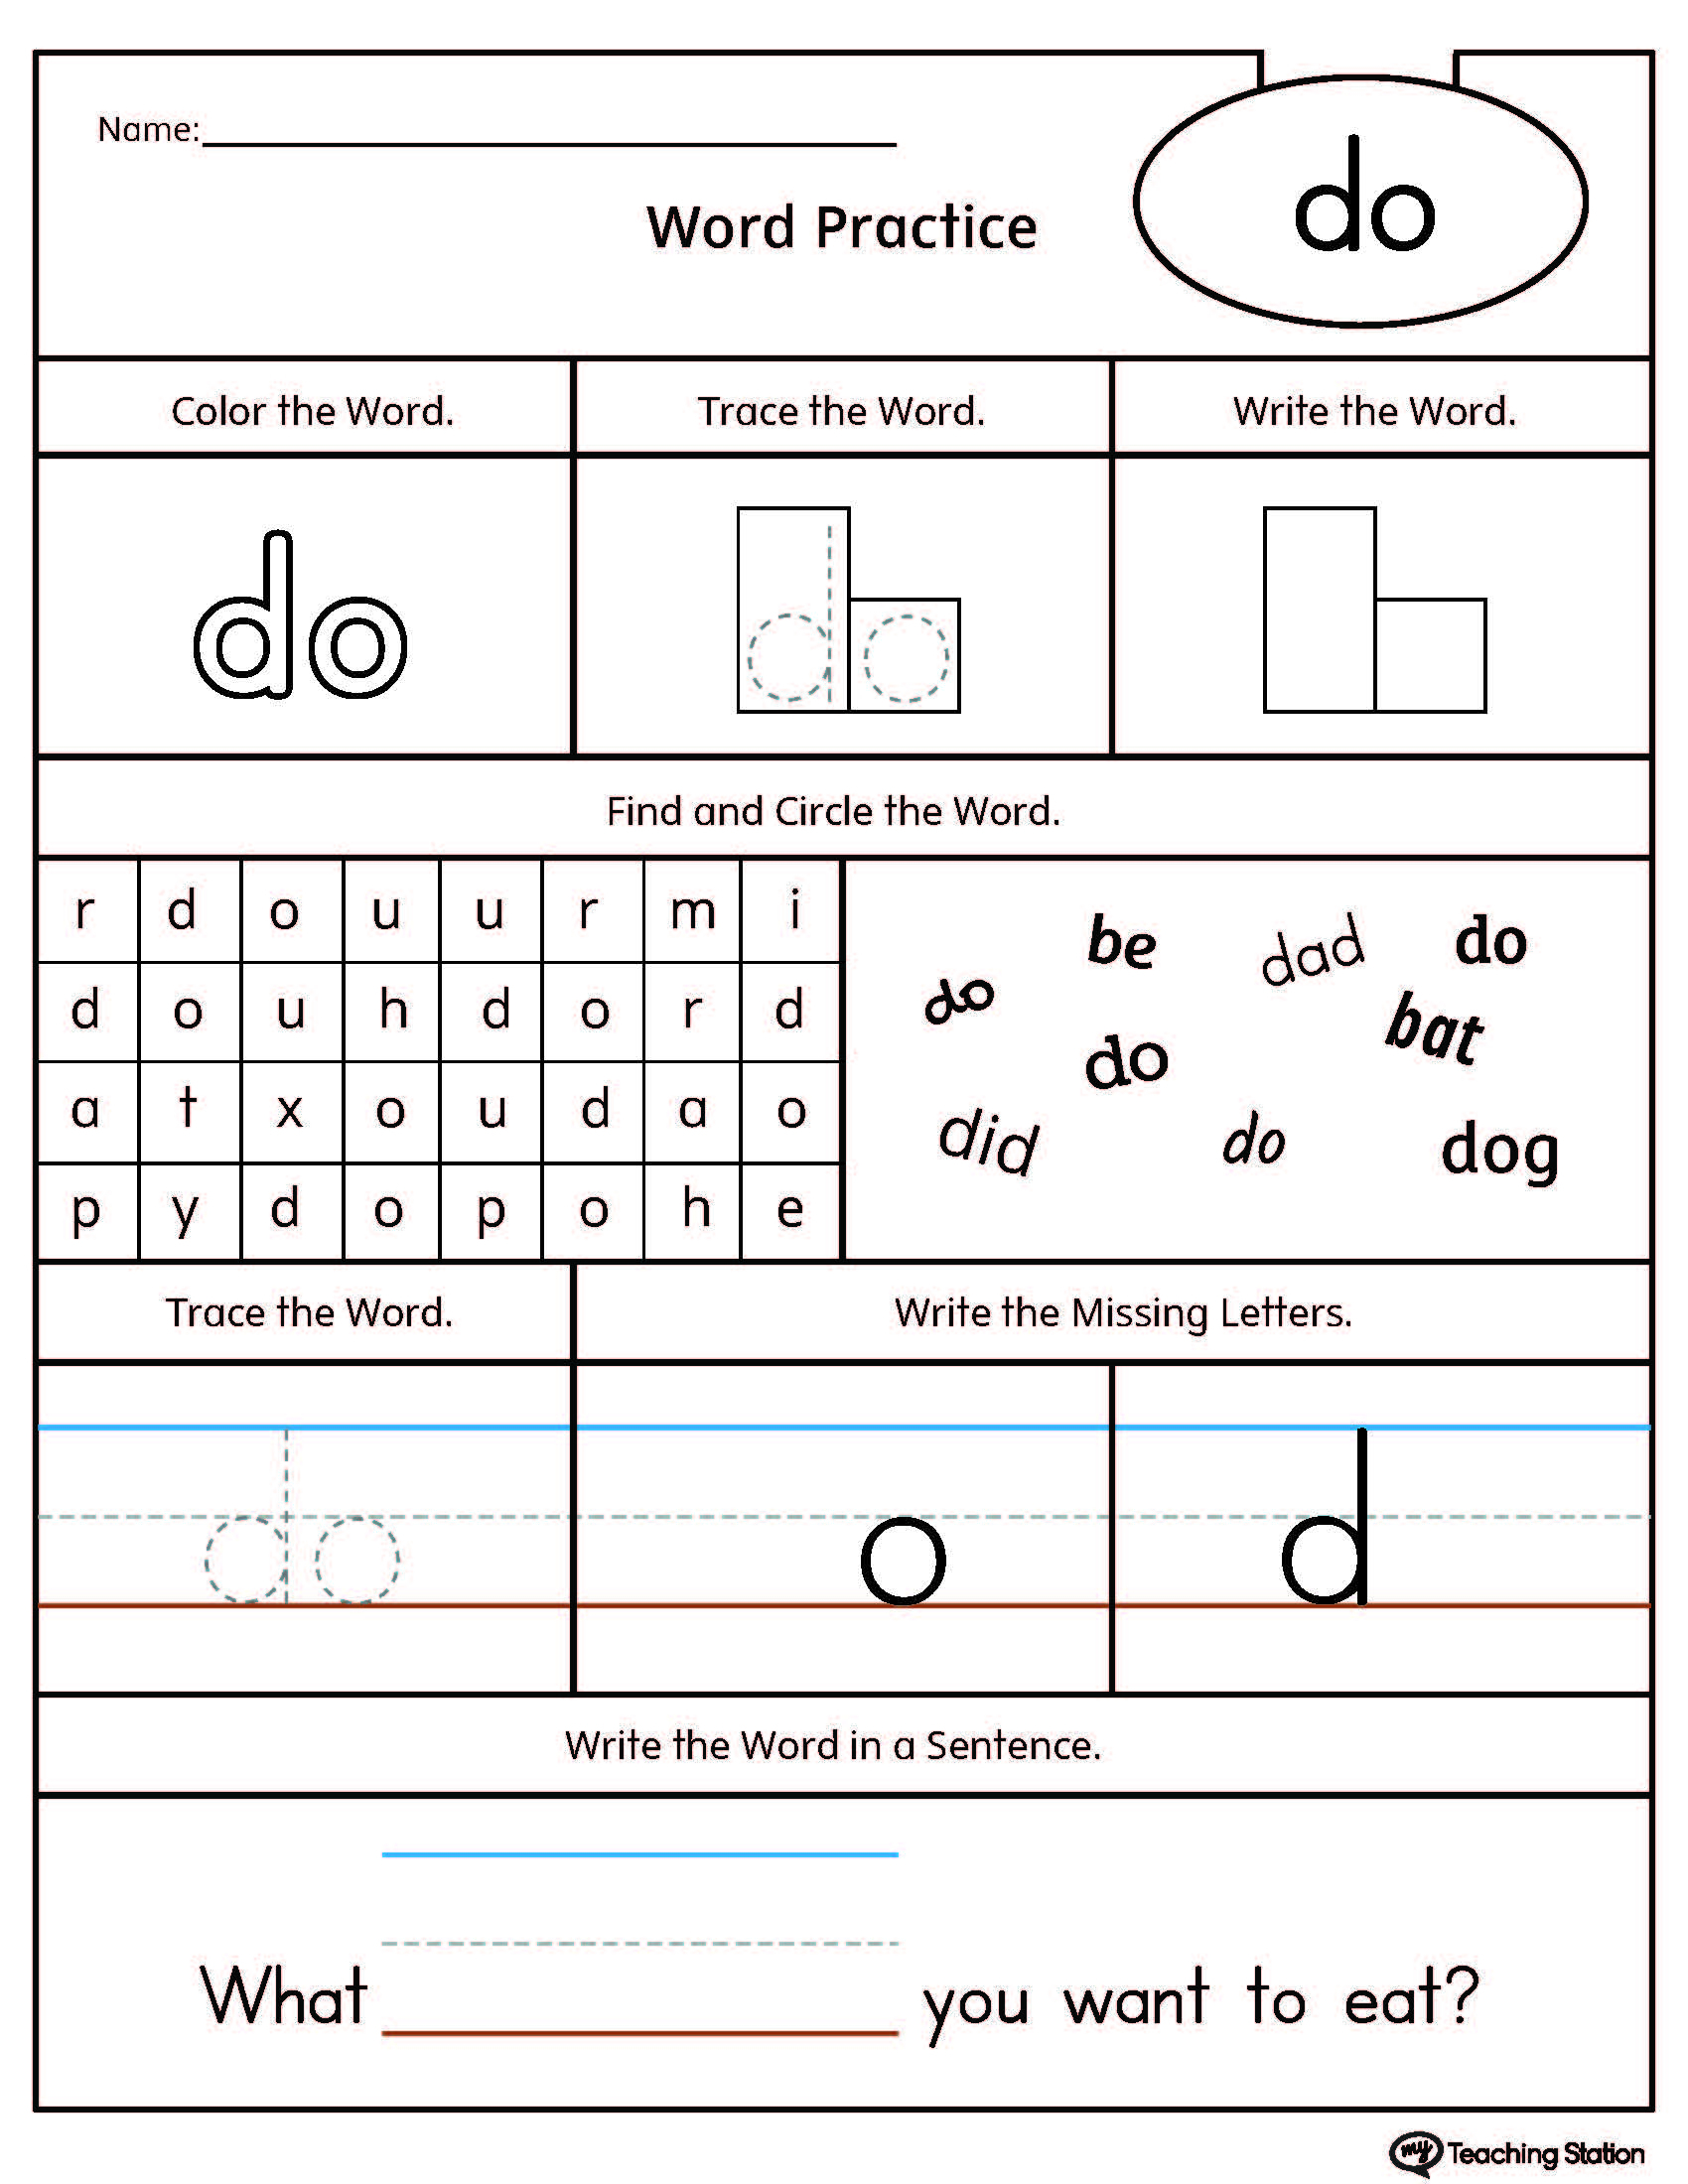 High-Frequency Word Do Printable Worksheet | Myteachingstation | Printable Sight Word Worksheets